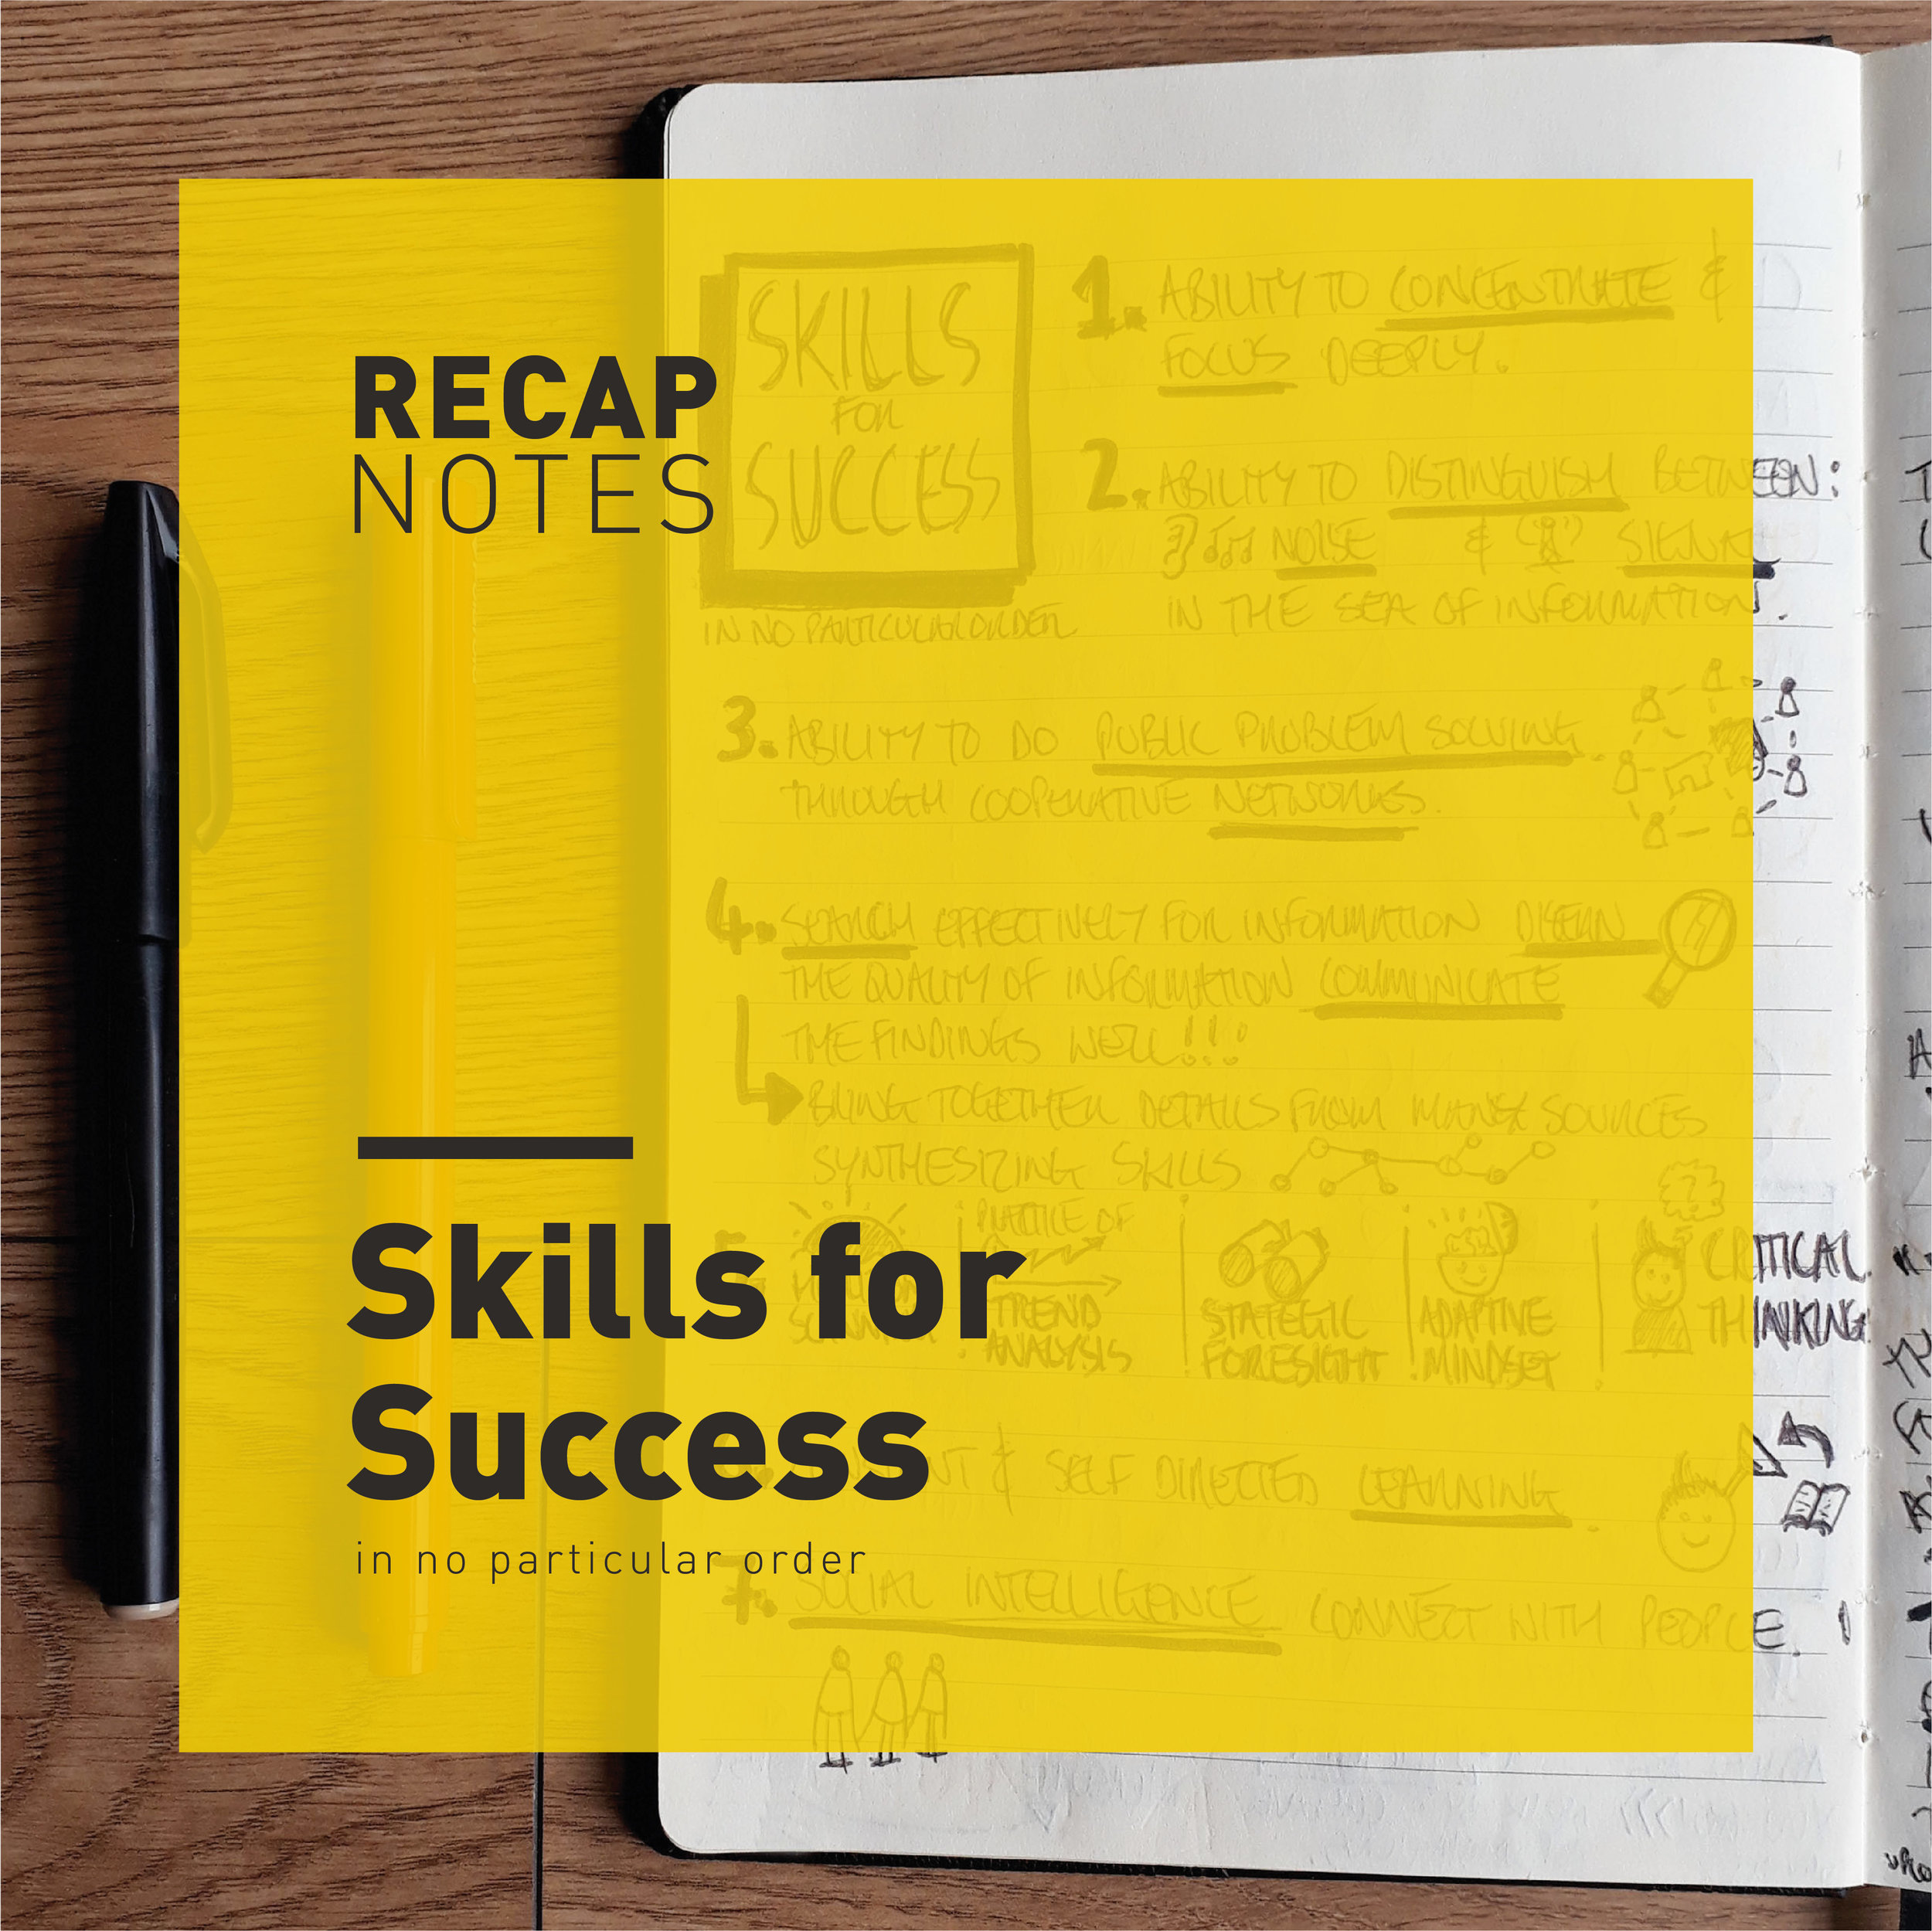 SkillsForSuccess_RecapPost_1.jpg